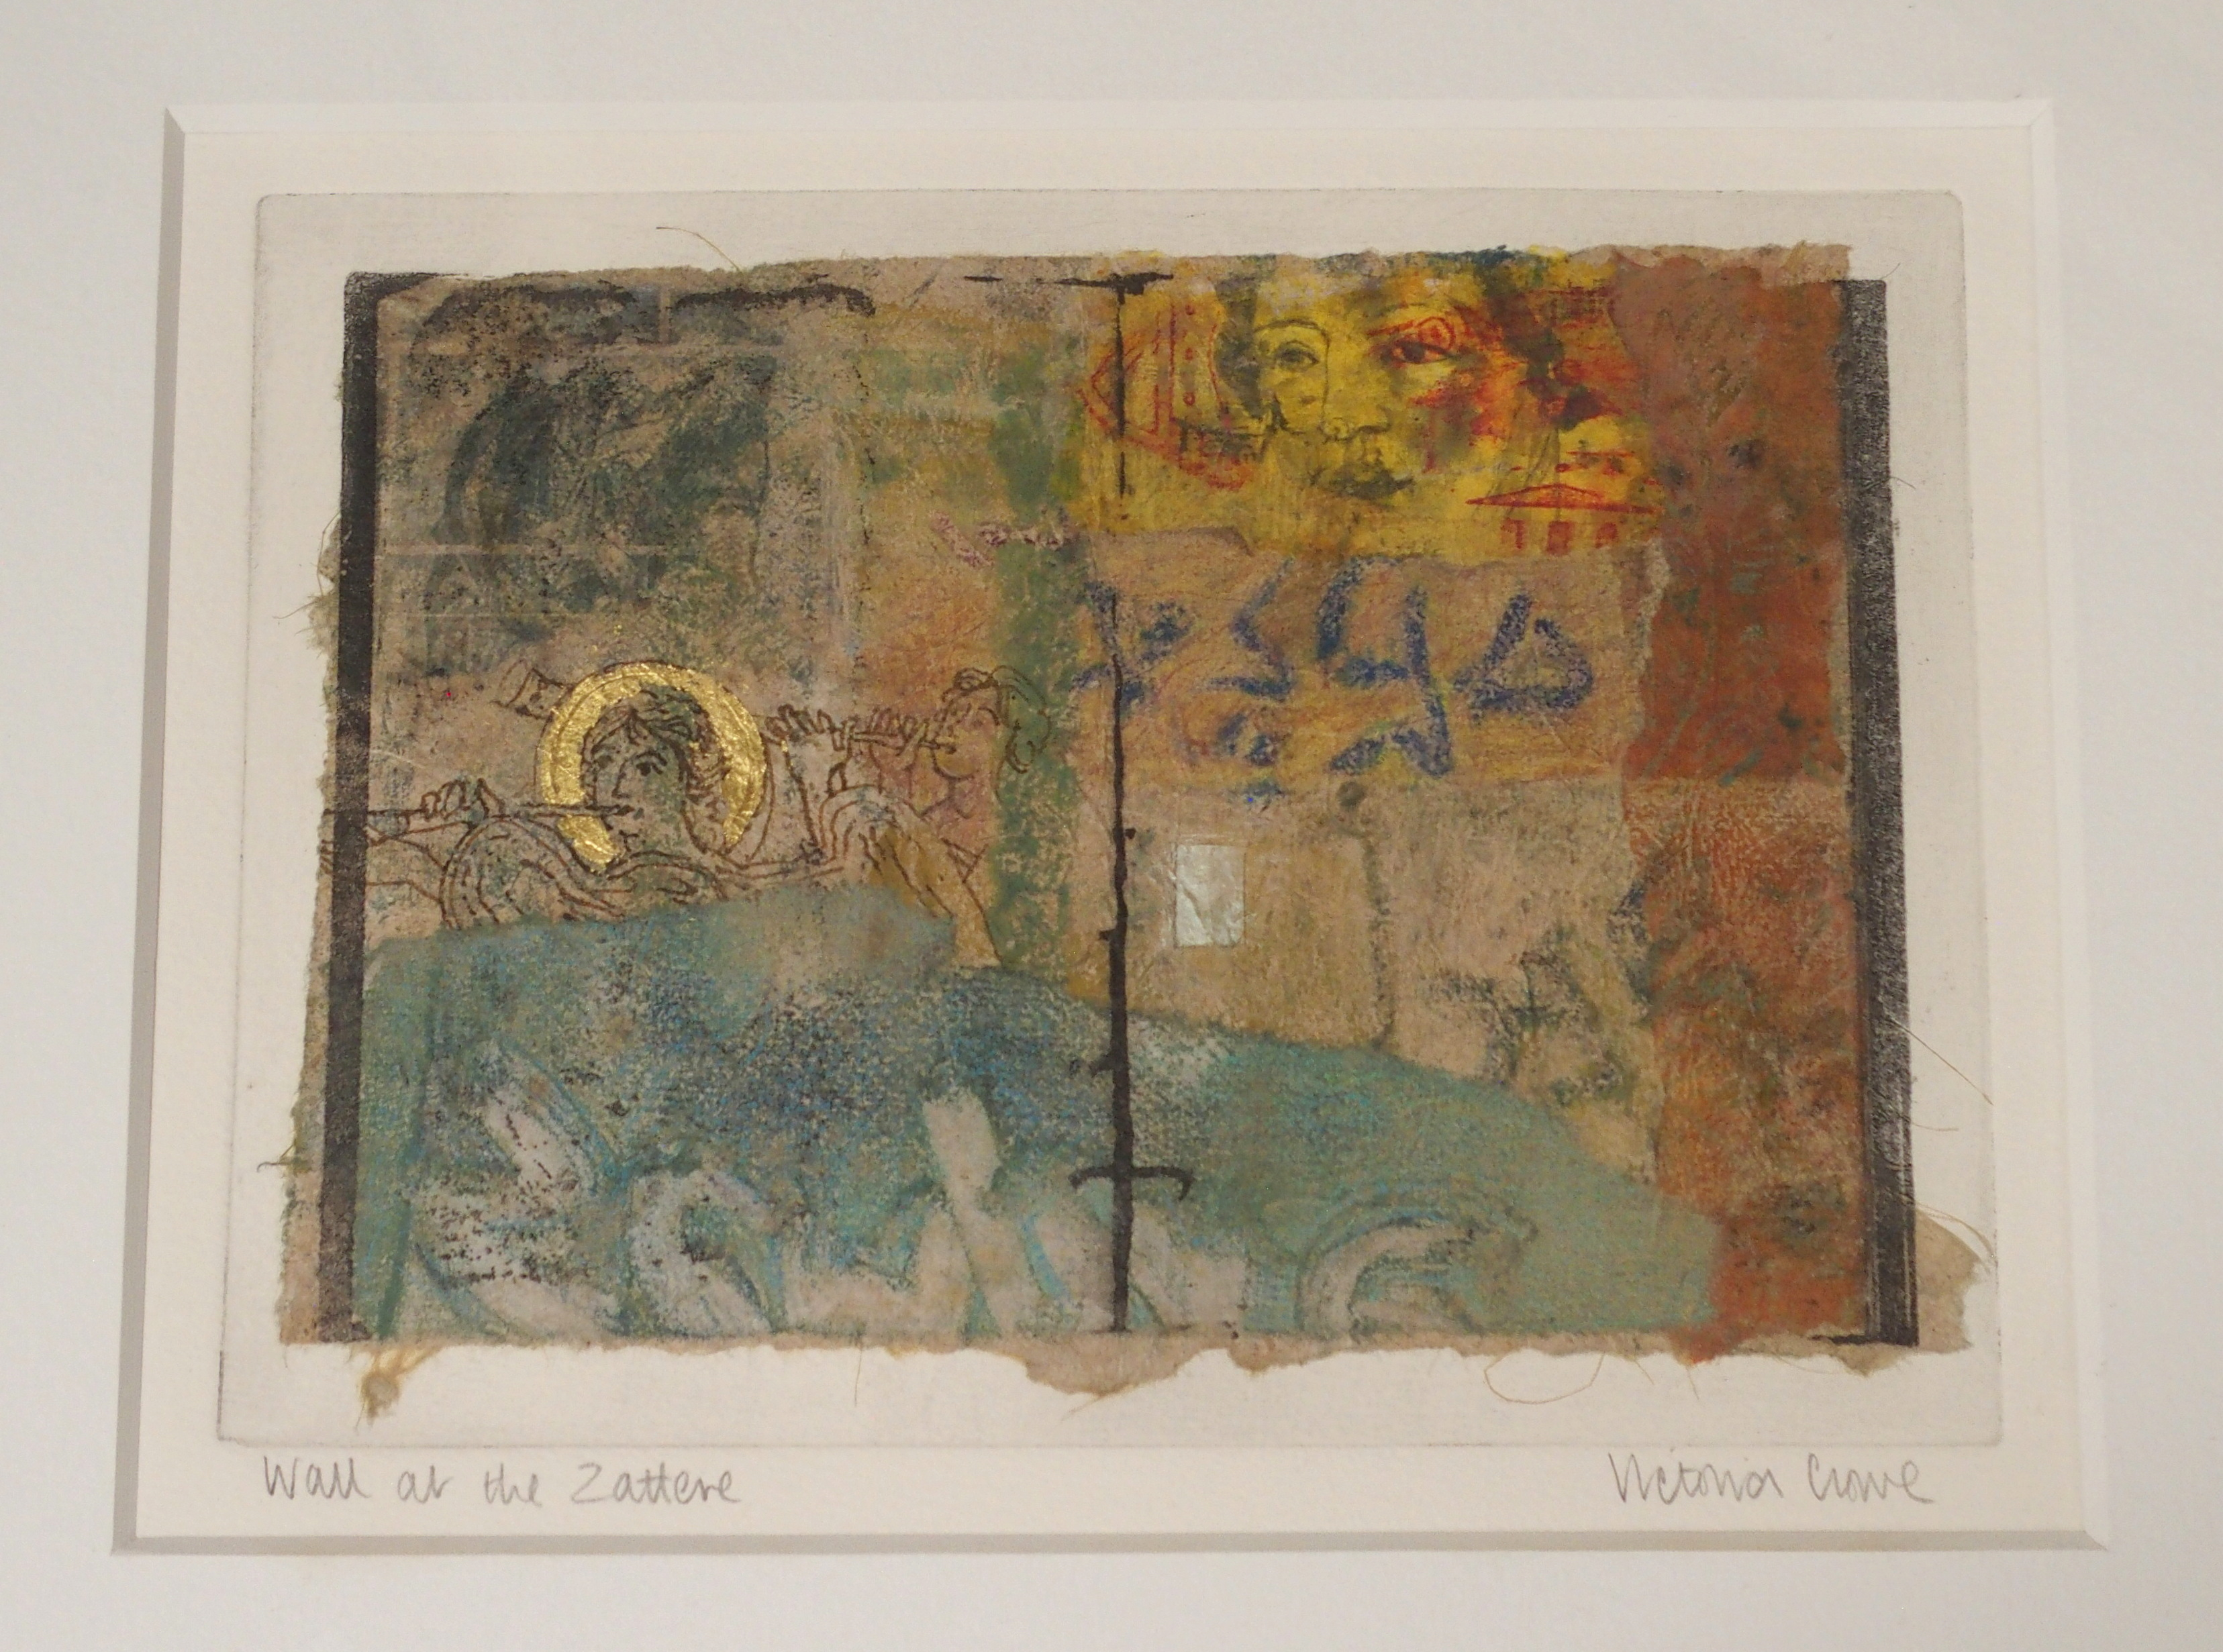 •VICTORIA CROWE OBE, RSA, RSW, FRSE (SCOTTISH B. 1945) WALL AT THE ZATTERE Mixed media on handmade